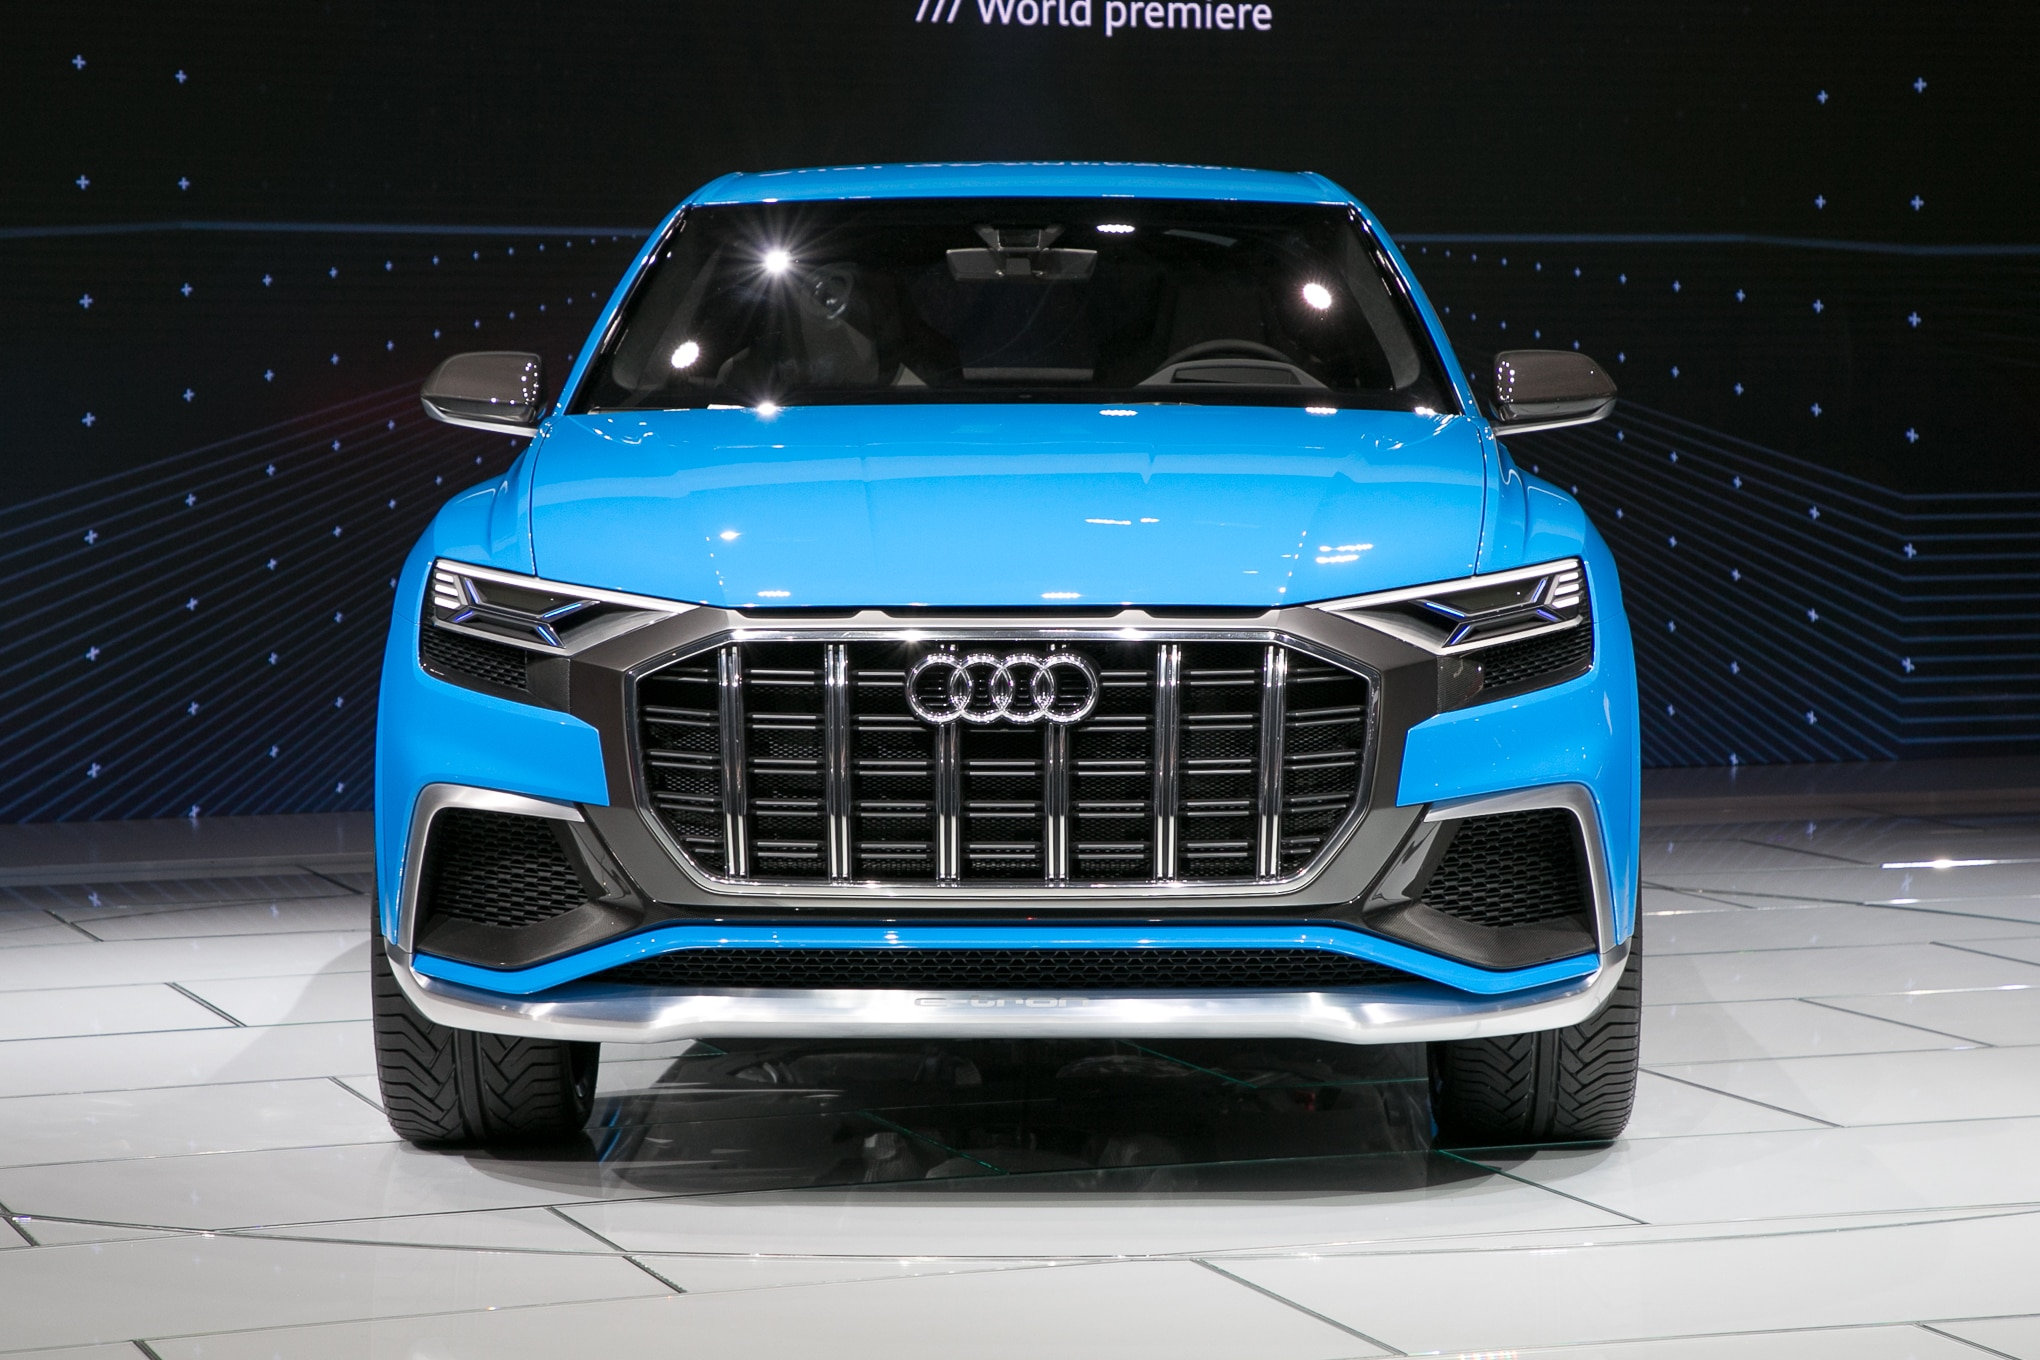 Awesome Lights Seven Awesome Features Of The Audi Q8 Concept Automobile